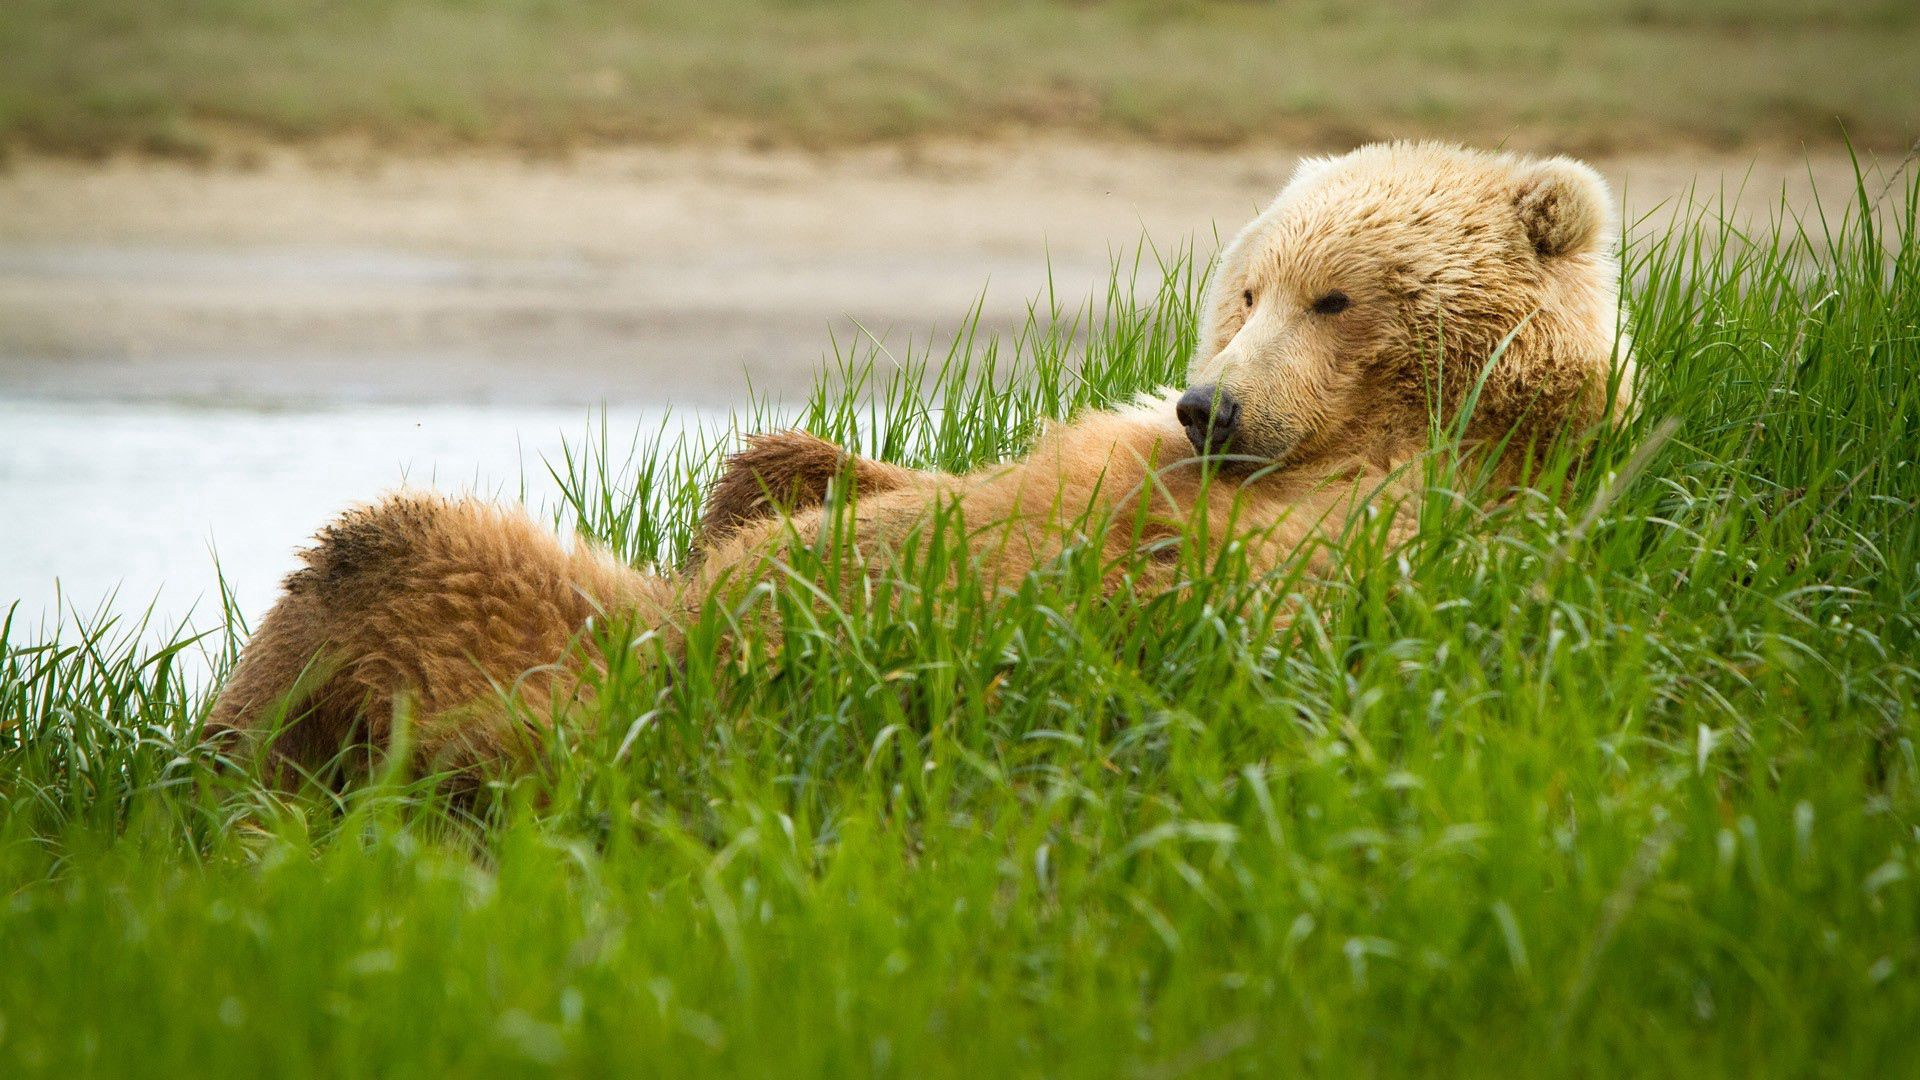 148877 Screensavers and Wallpapers Bear for phone. Download Animals, Grass, To Lie Down, Lie, Bear, Cool, Grizzly, Grizzly Bear pictures for free